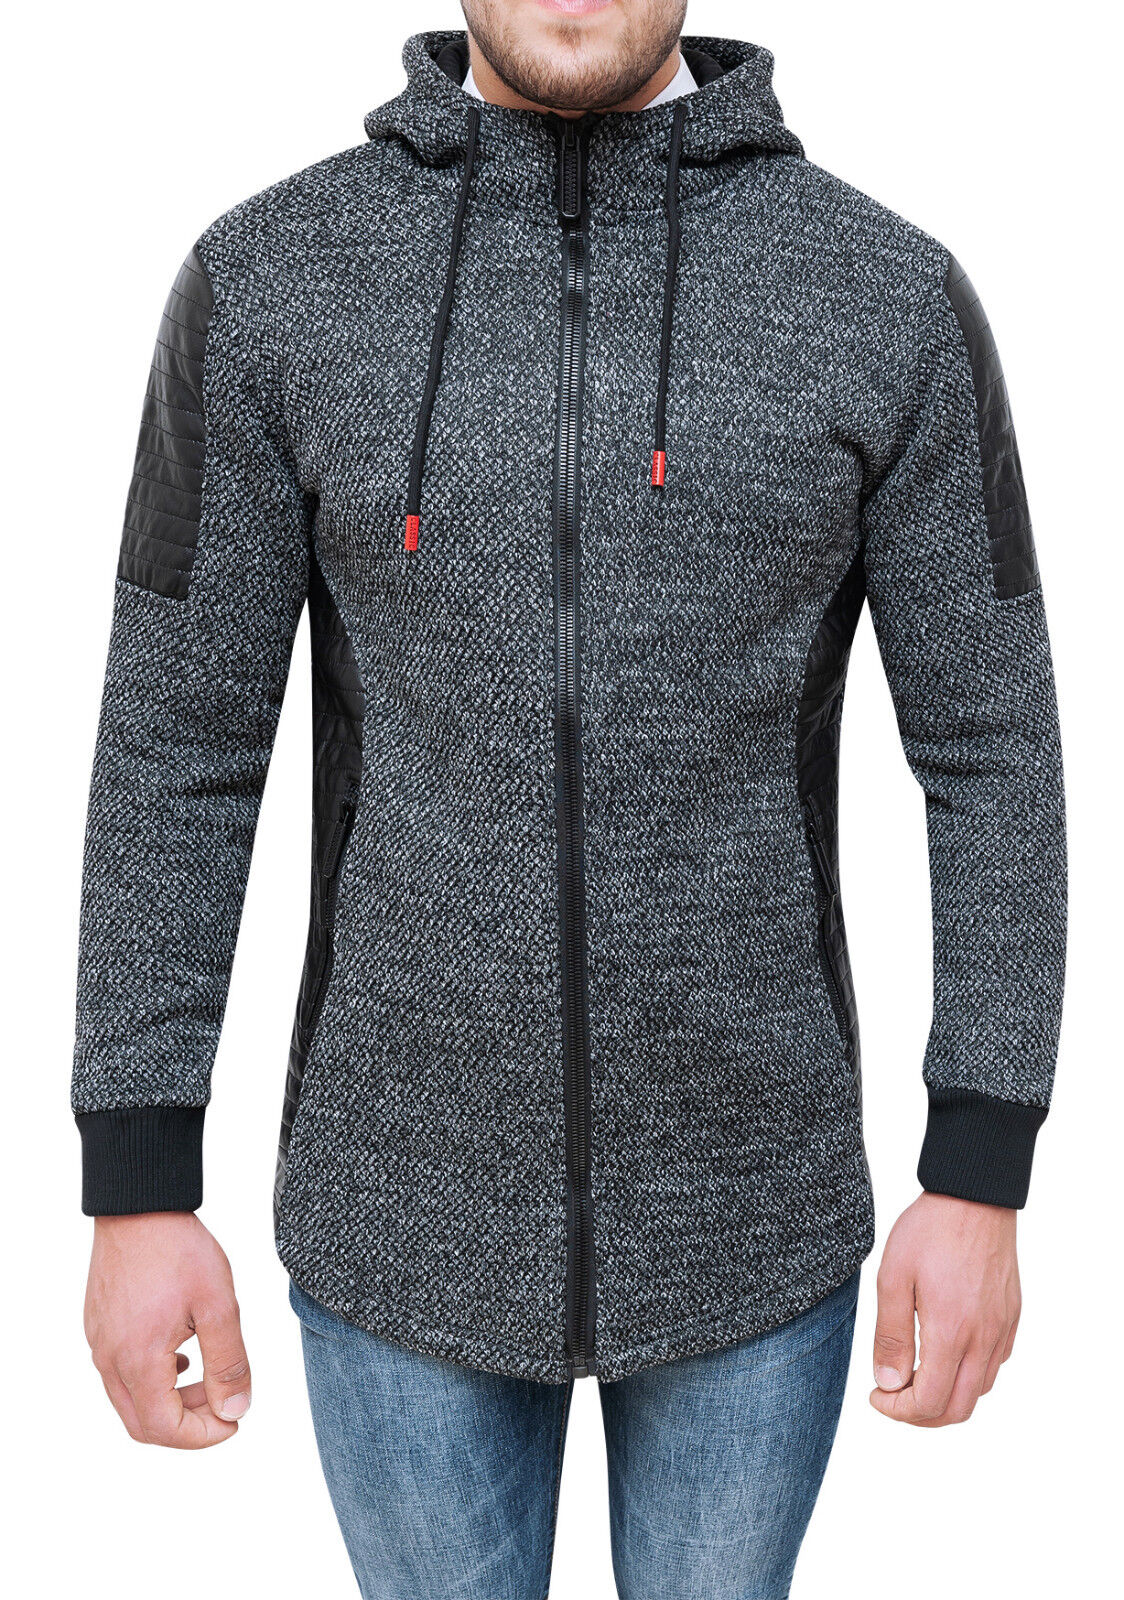 pretty nice cddb5 6666d CARDIGAN GIACCA UOMO TWEED NERO CASUAL INVERNALE GIUBBOTTO ...